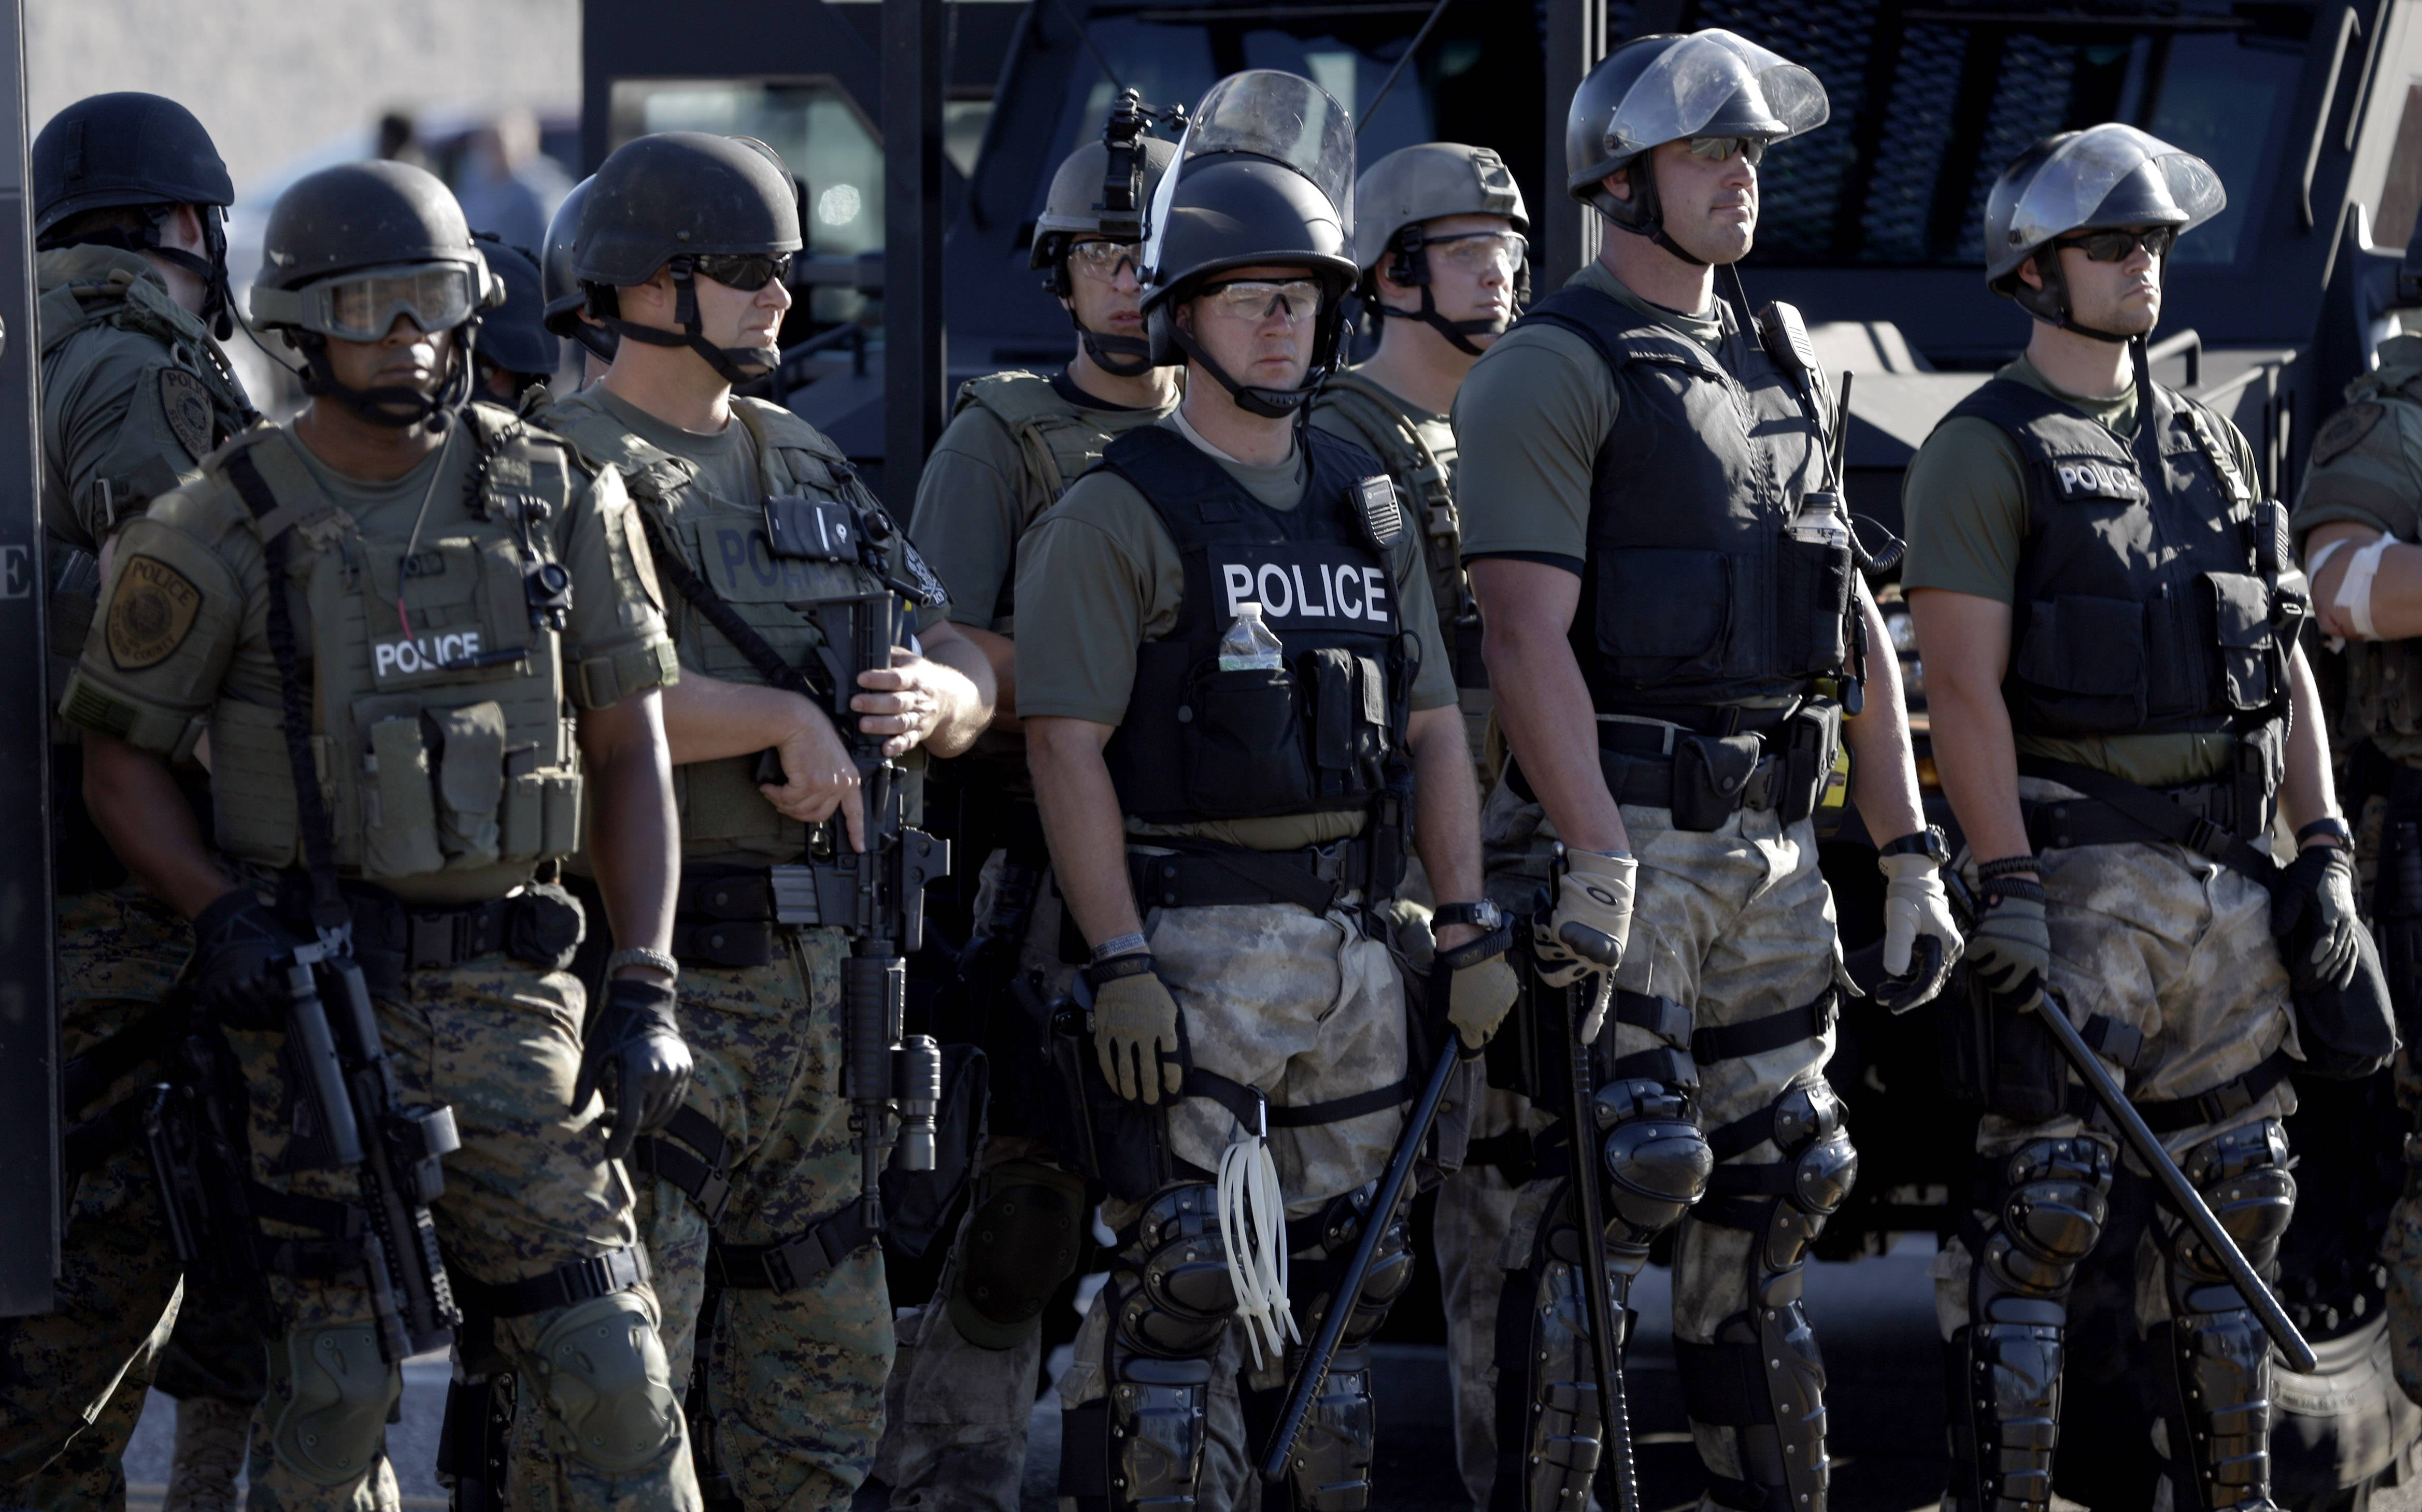 Images of police outfitted in paramilitary gear clashing with protesters in suburban St. Louis after the weekend shooting death of unarmed black teenager are giving new impetus to efforts to rein in a Pentagon program that provides free machine guns and other surplus military equipment to local law enforcement agencies.